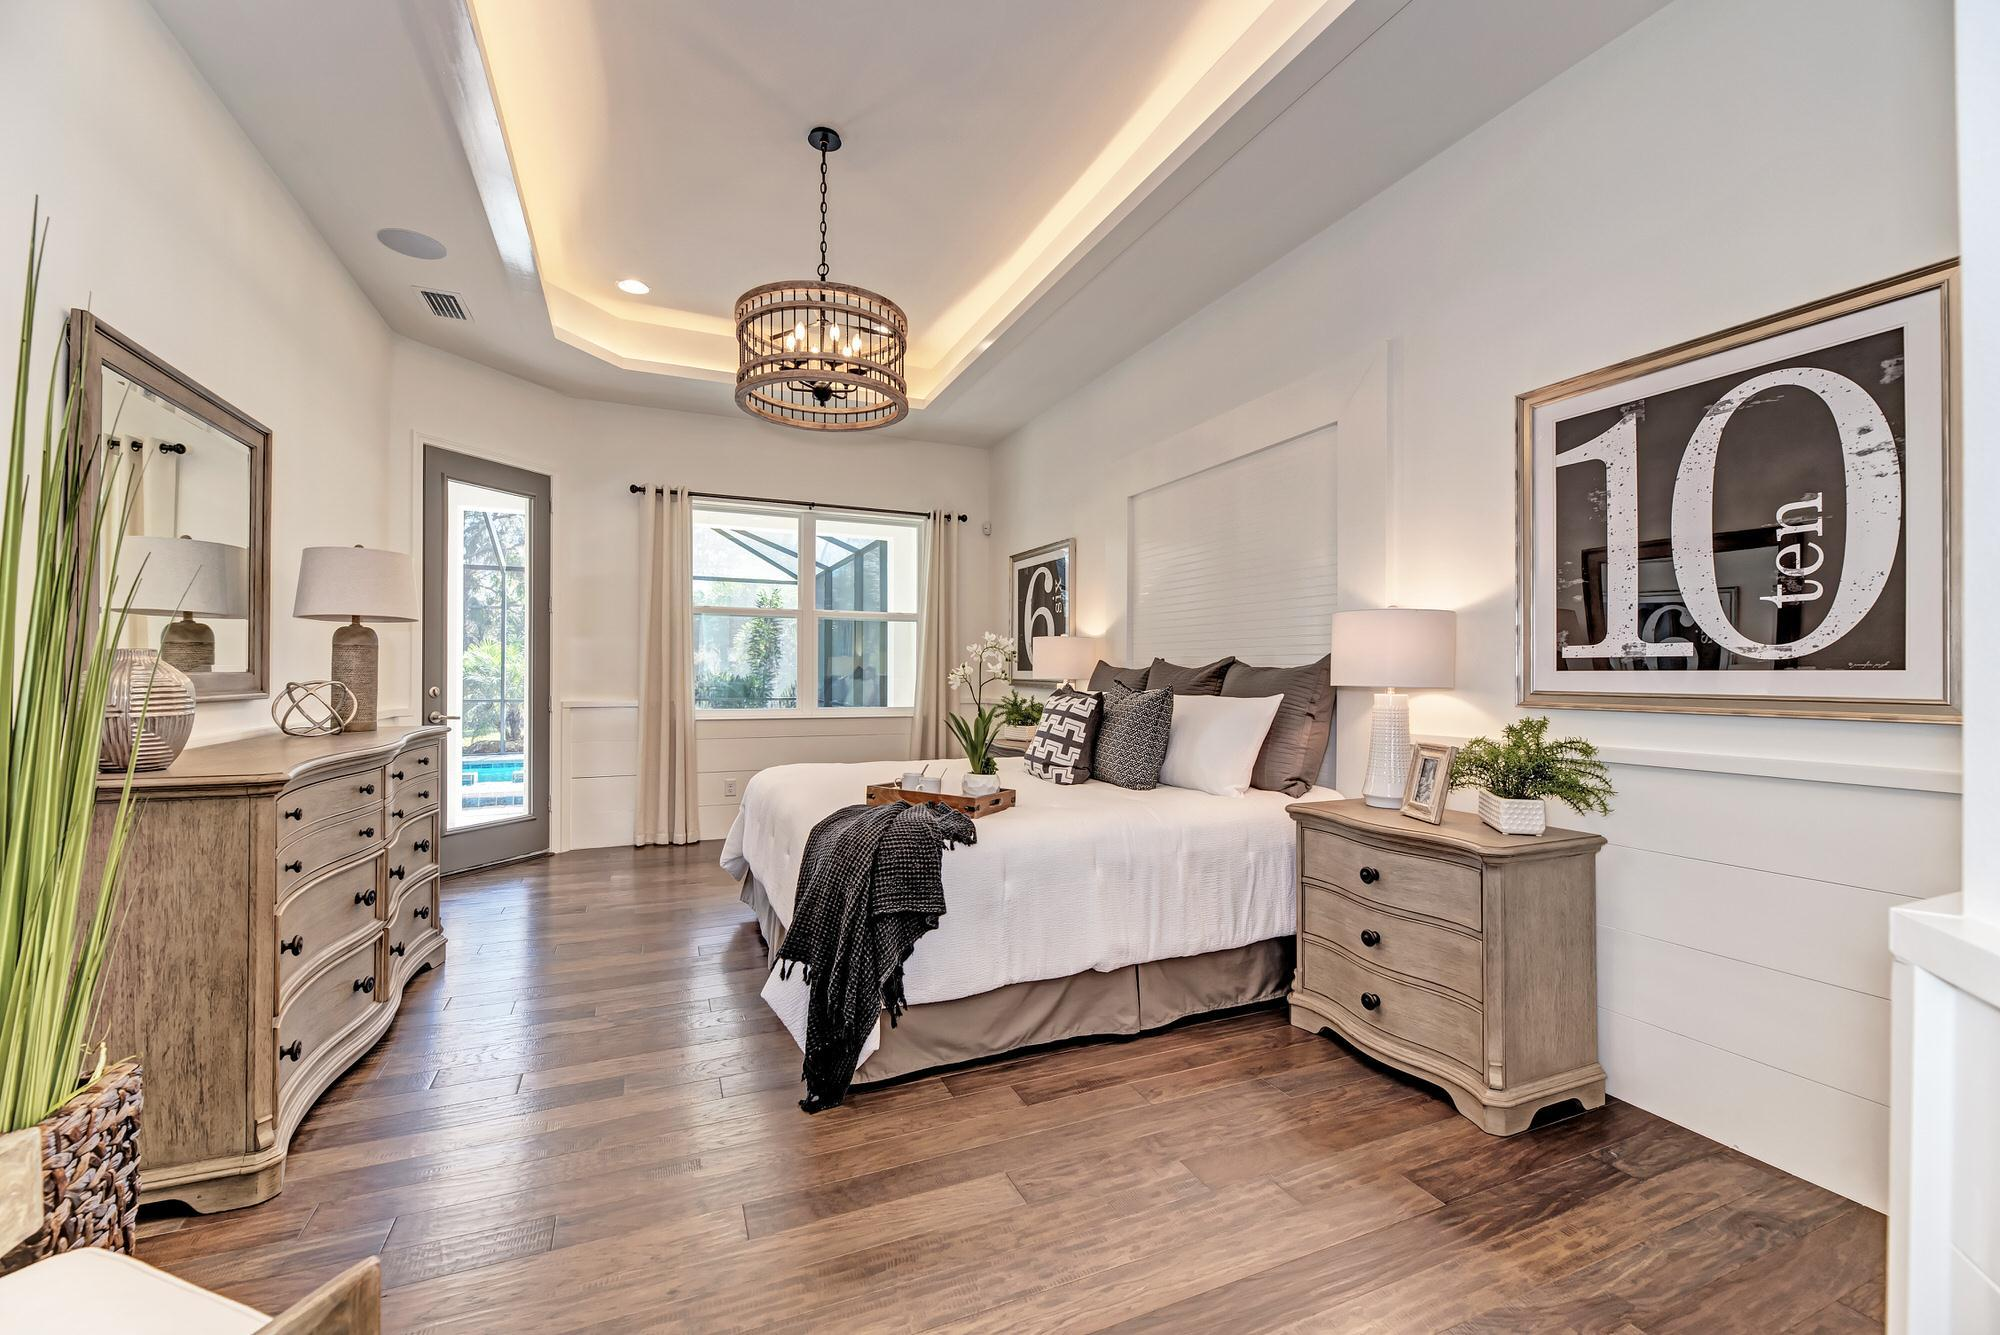 Bedroom featured in the Aruba By Medallion Home in Orlando, FL